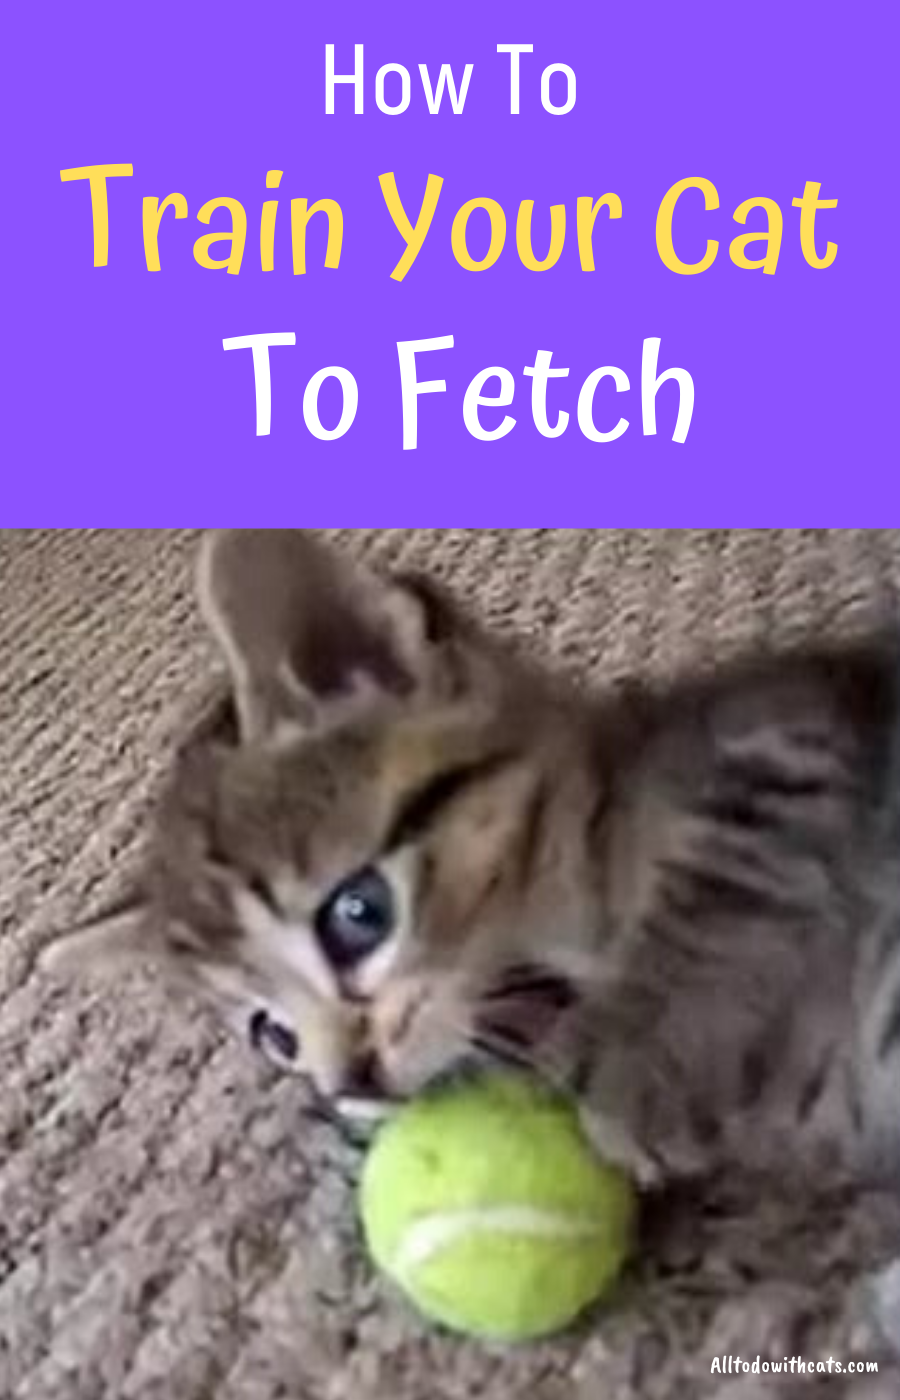 How To Train Your Cat To Fetch Like A Pro Proven Tips And Tricks In 2020 Cat Training Training A Kitten Cat Behavior